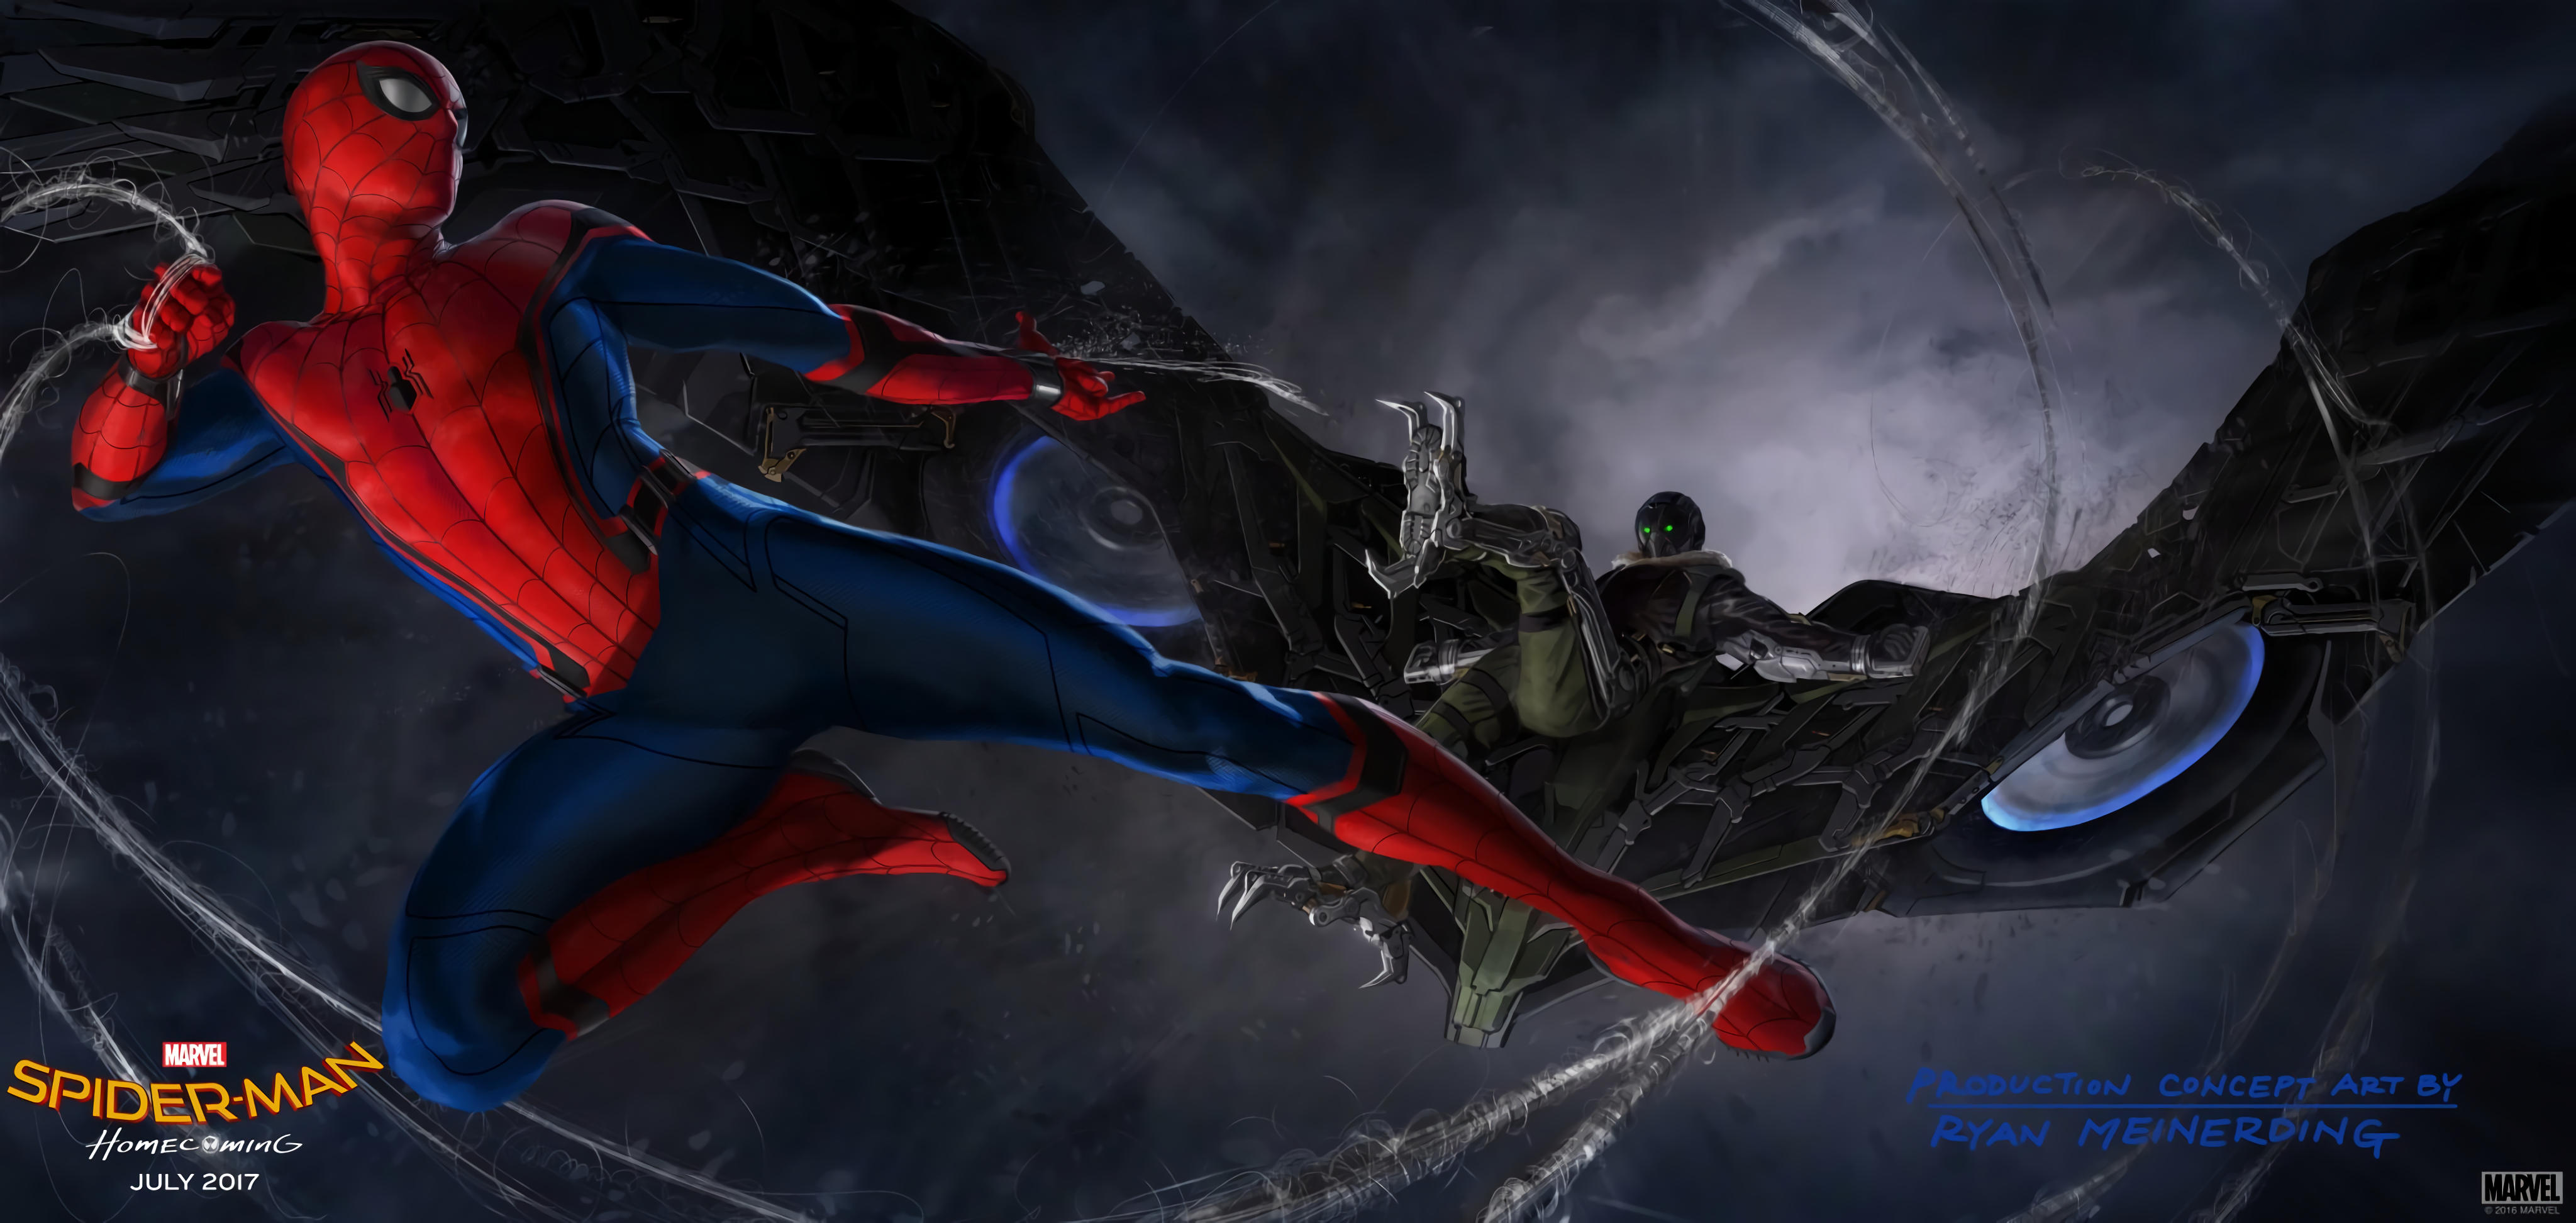 Spider Man Homecoming Concept Art HD Wallpaper Background Image 4096x1944